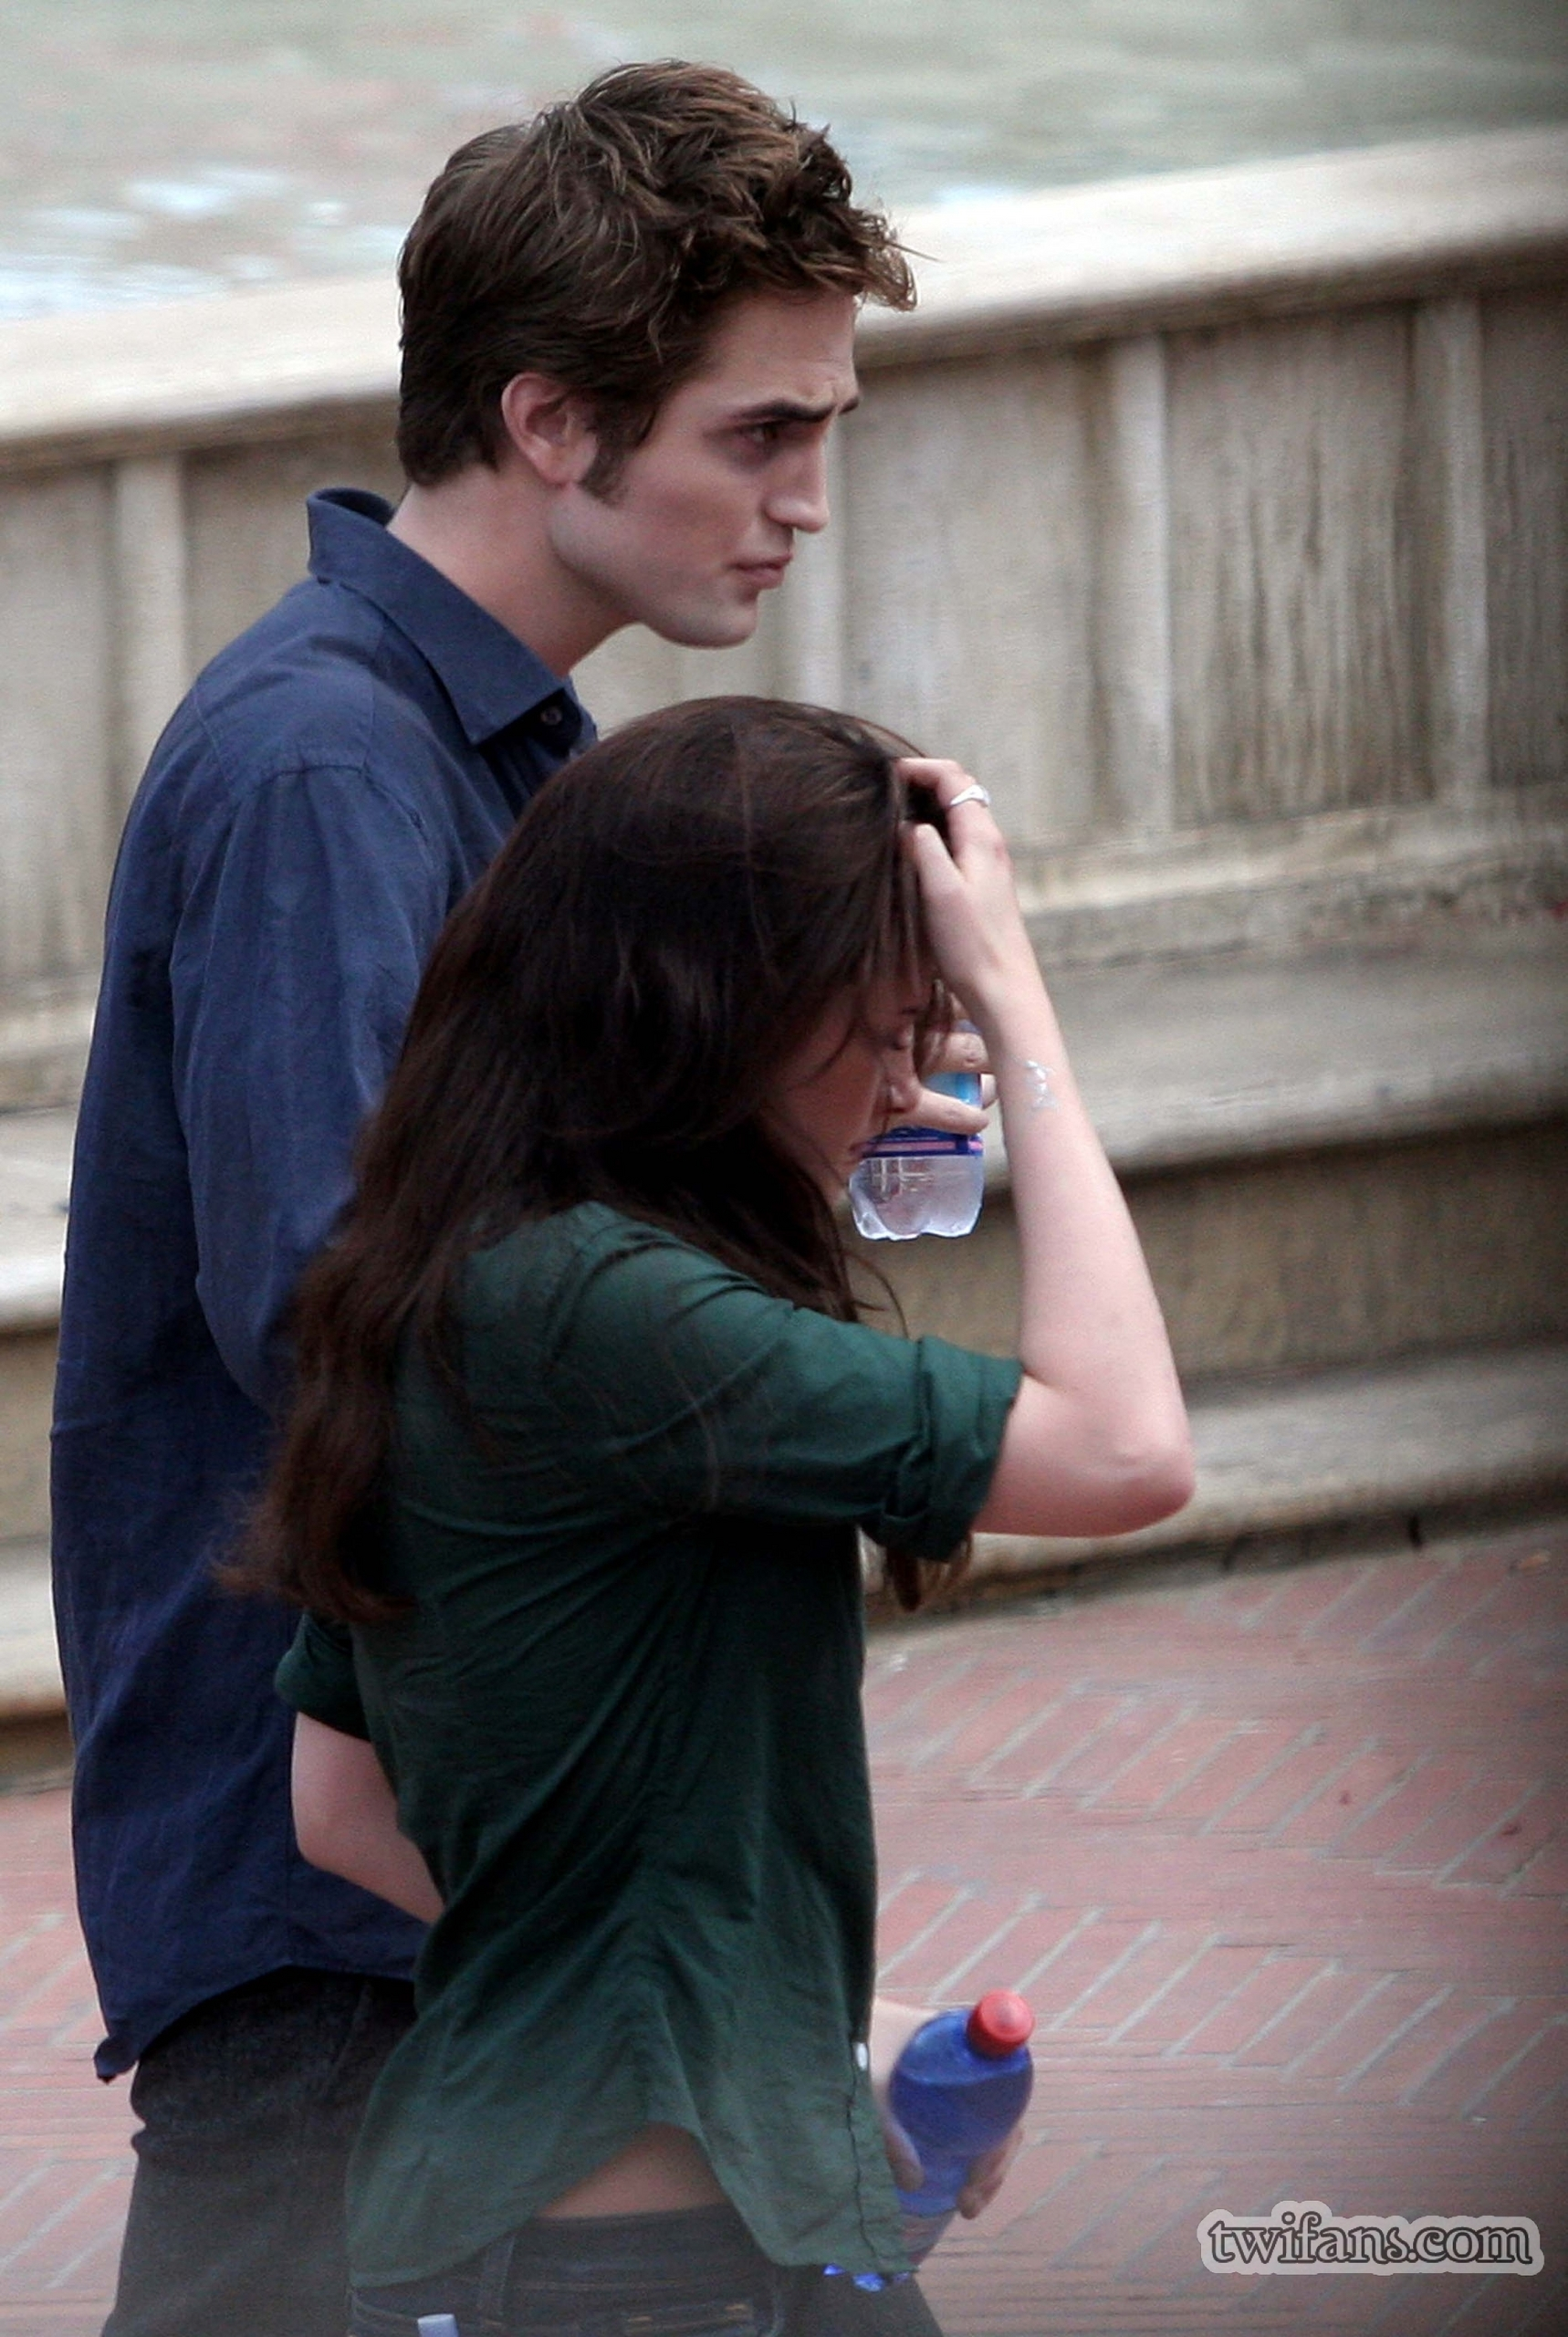 http://images2.fanpop.com/images/photos/6400000/on-set-twilight-series-6431716-1718-2560.jpg